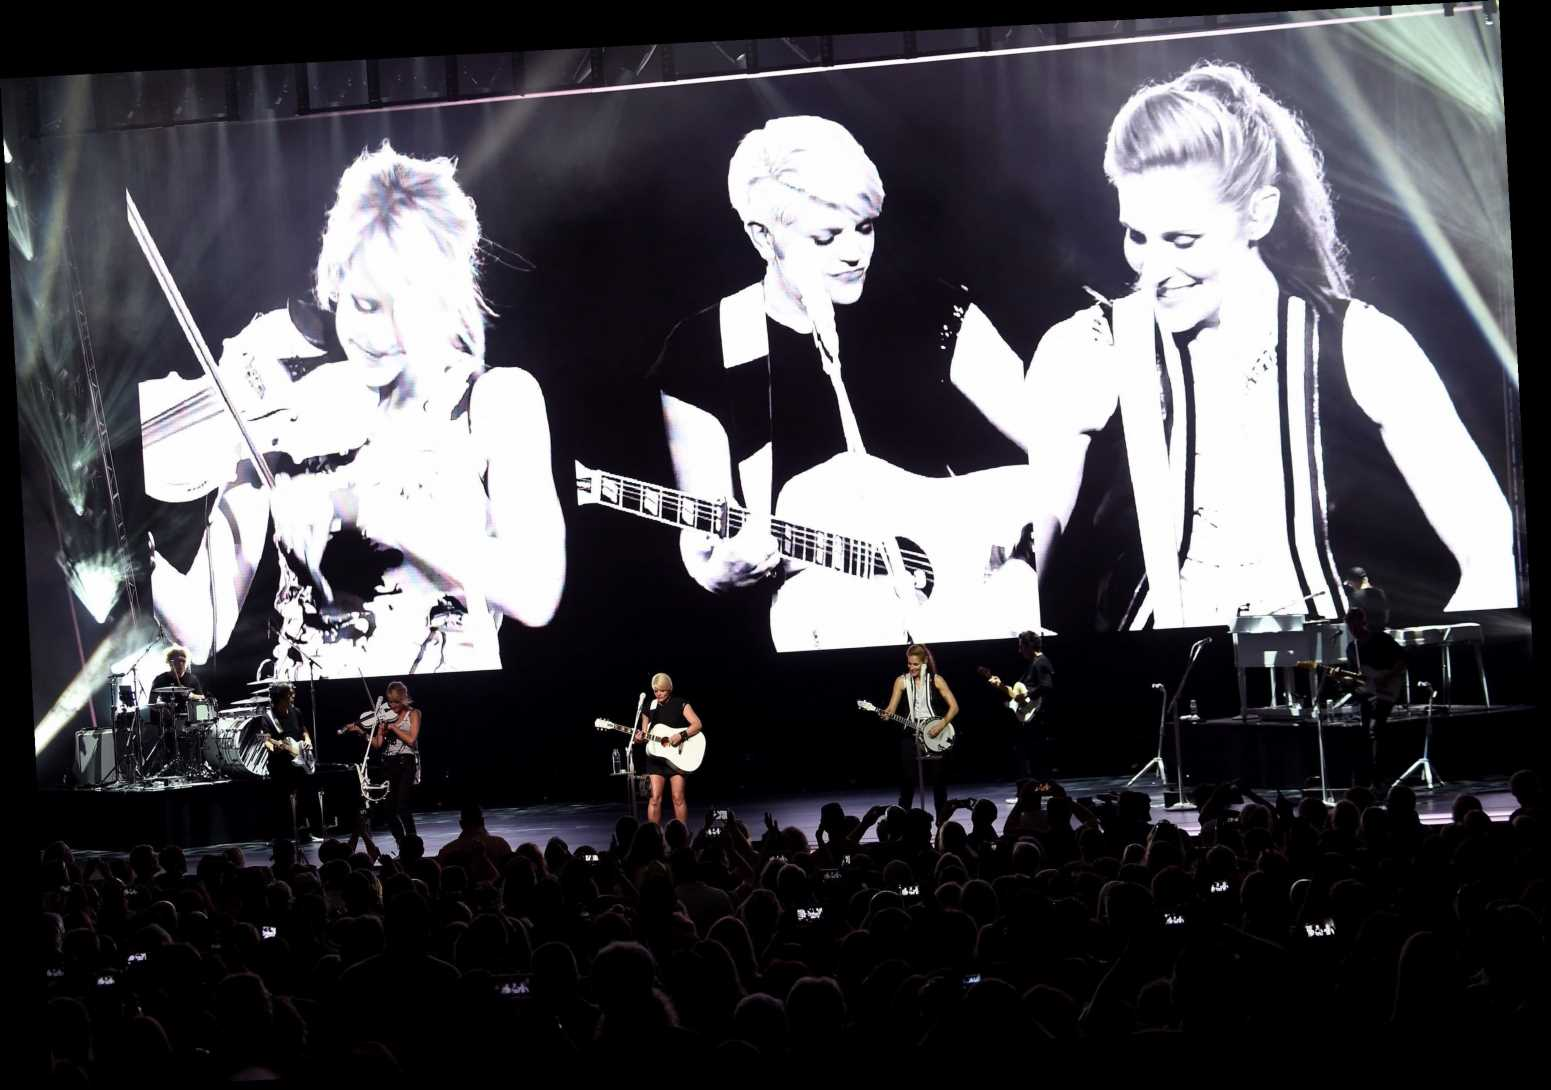 Dixie Chicks Change Their Name To Simply 'The Chicks'